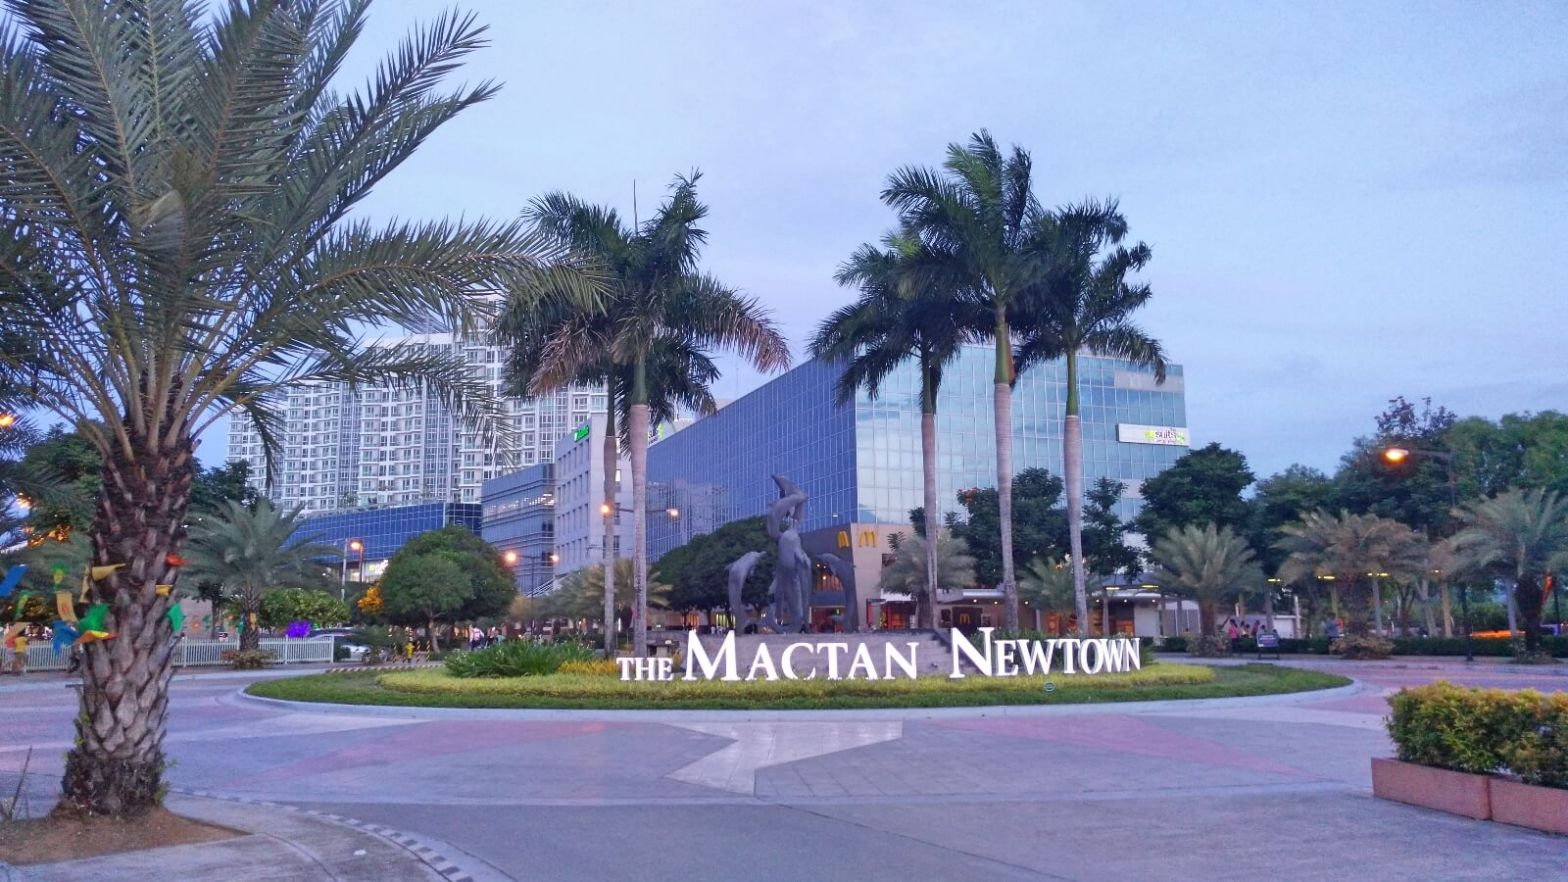 The Mactan Newtown